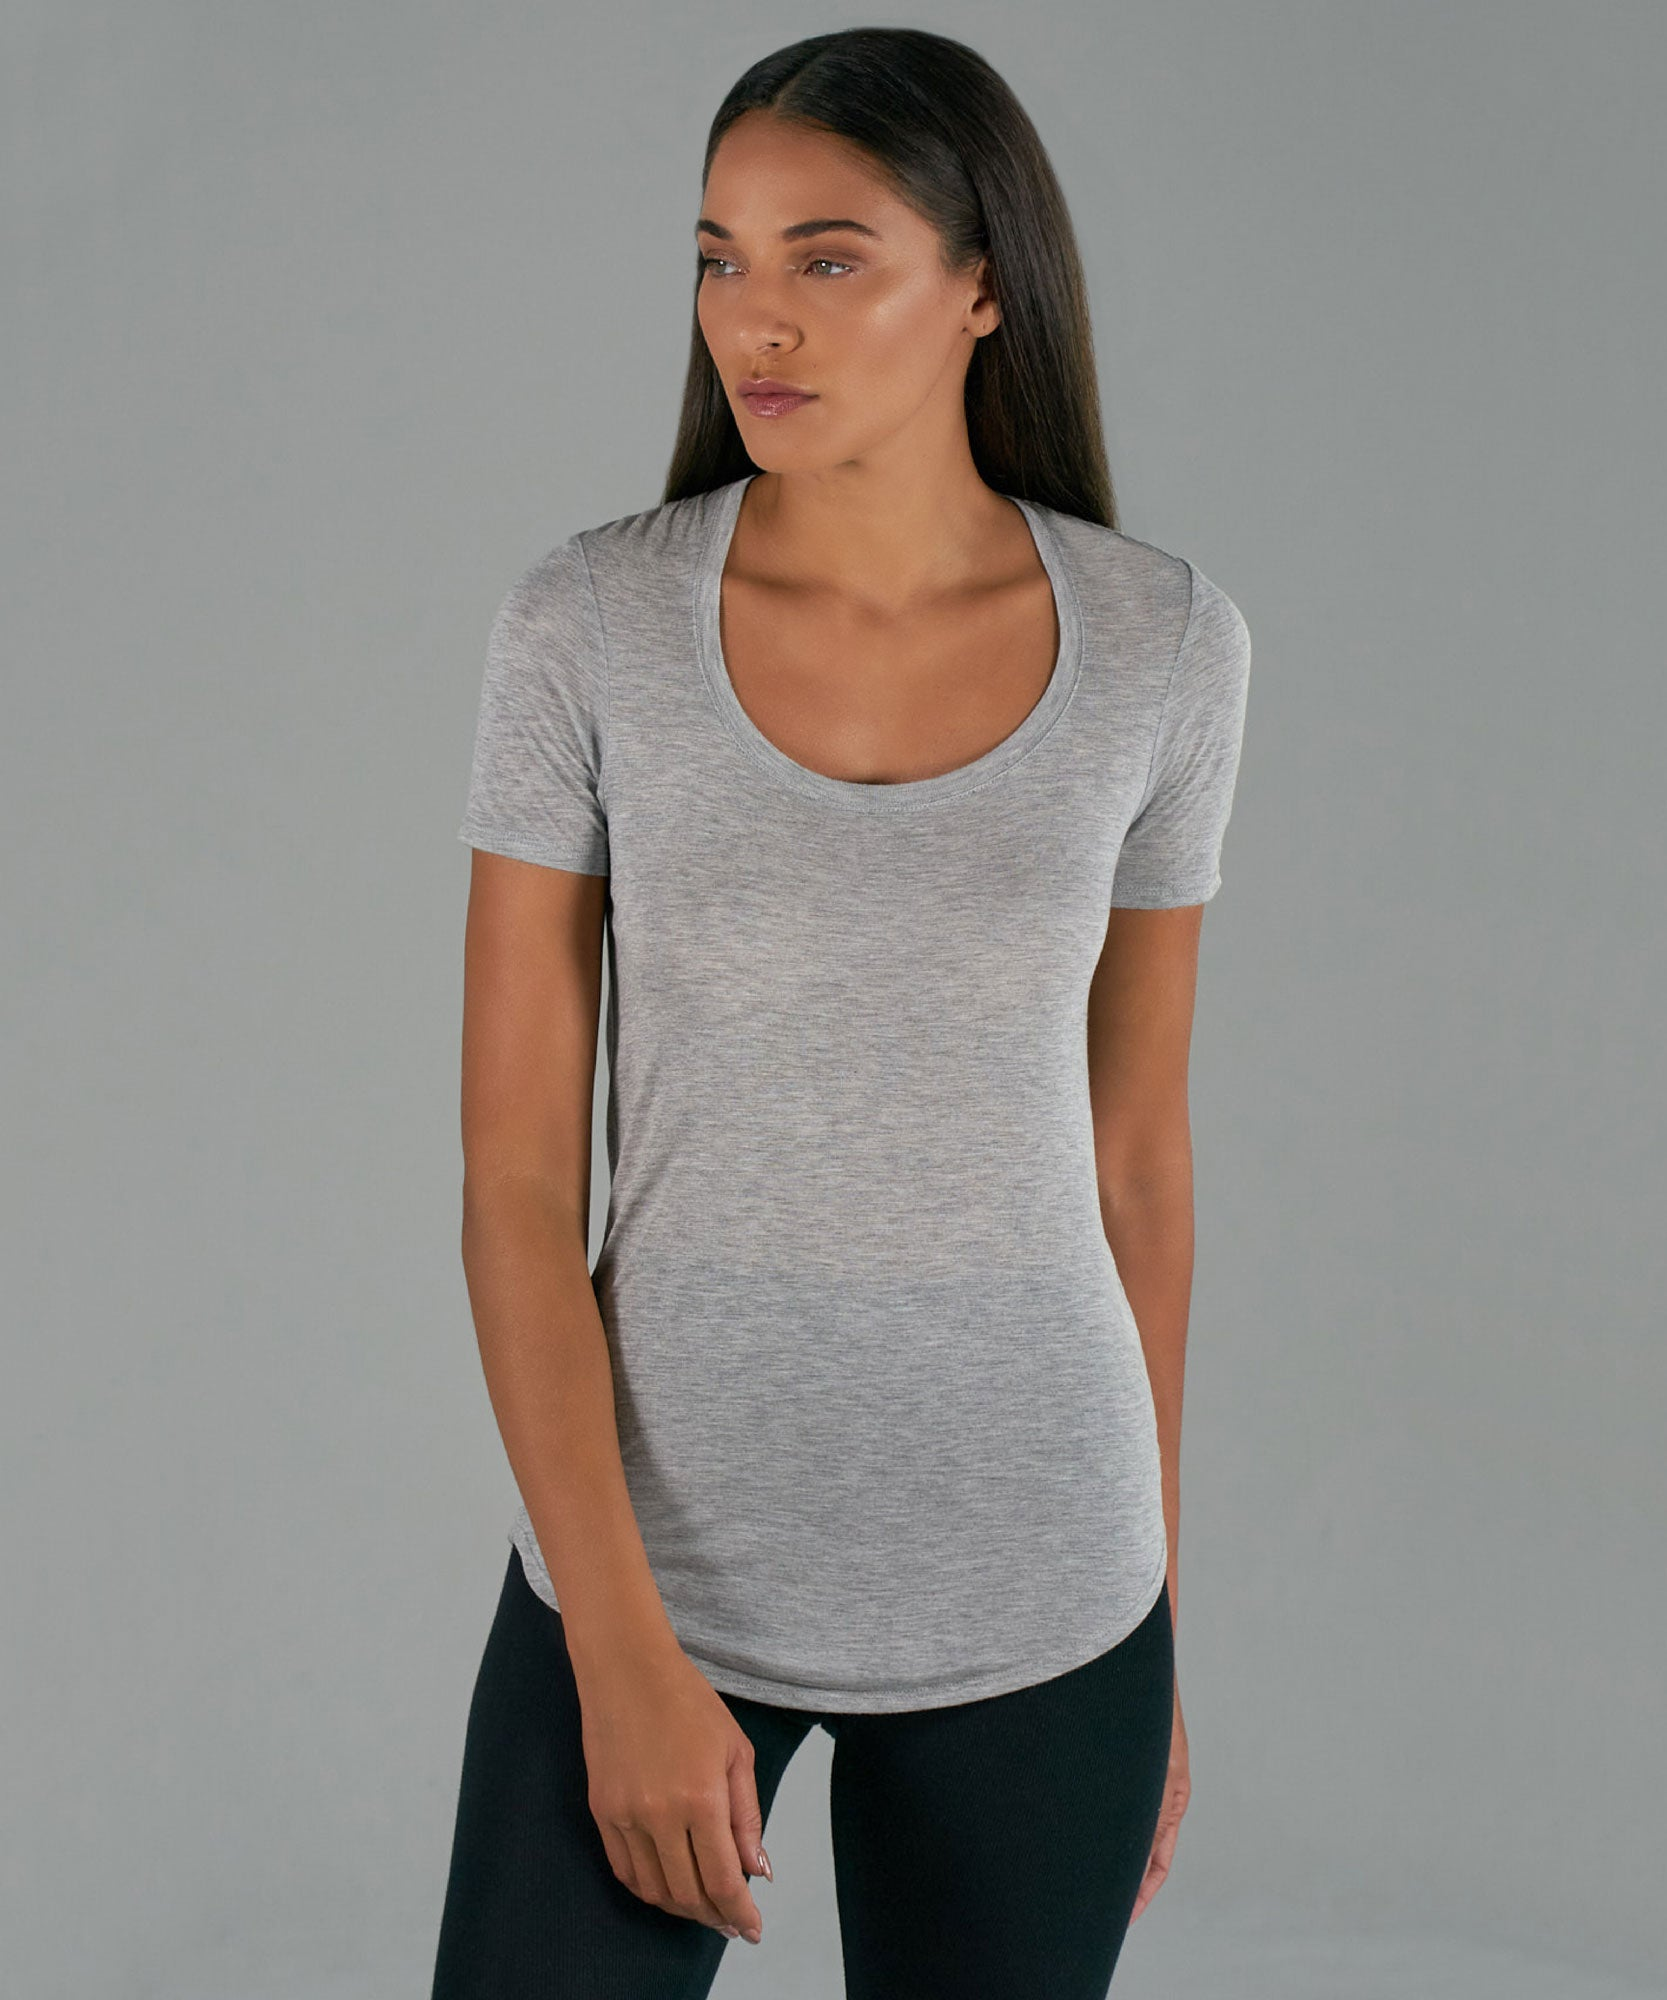 Heather Grey Modal Jersey Sweetheart Tee - Women's Jersey Tee by ATM Anthony Thomas Melillo